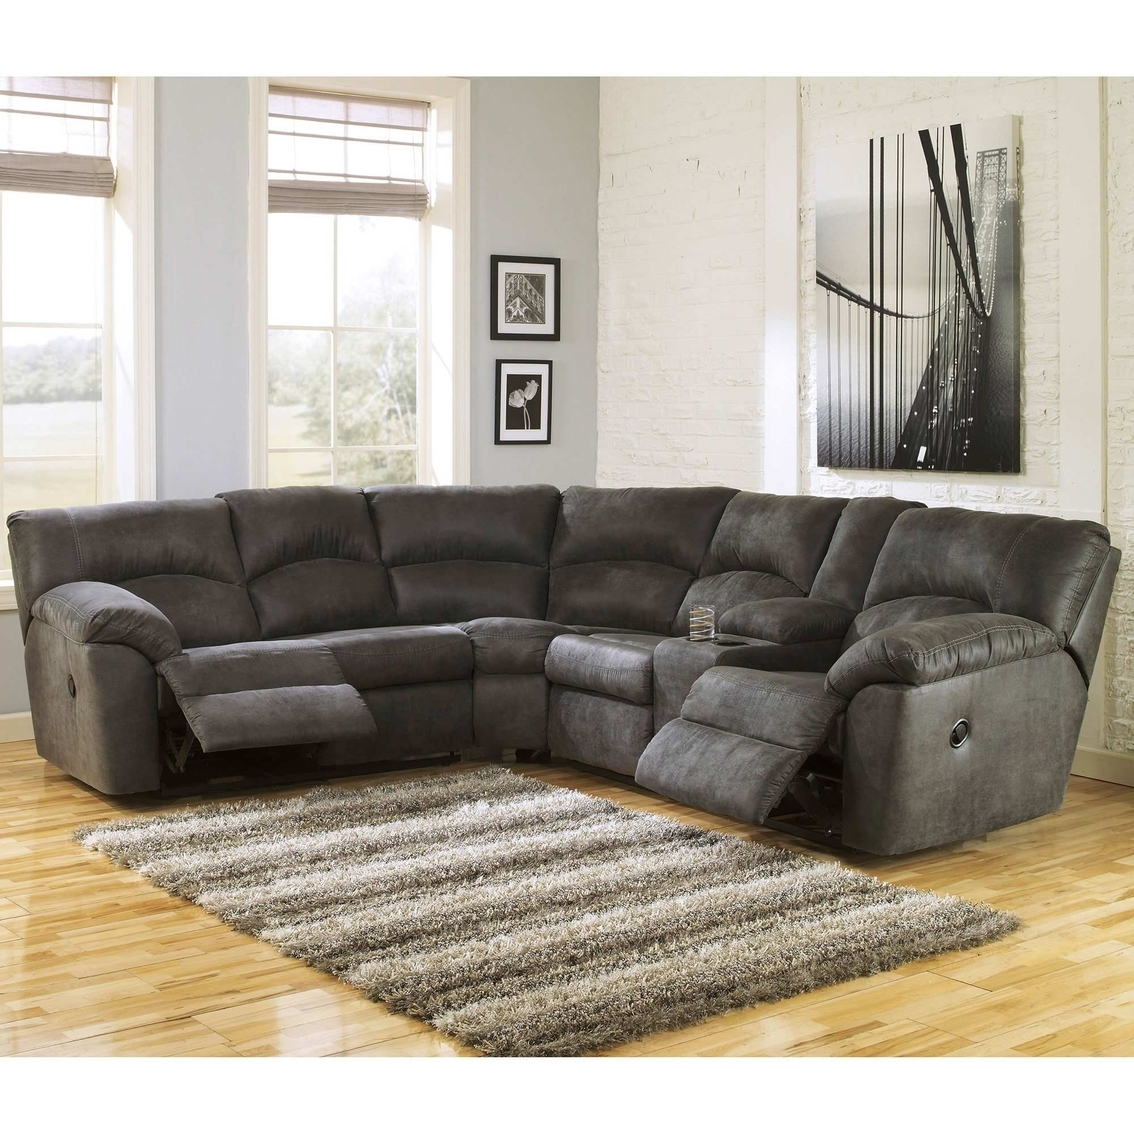 Signature Design Ashley Tambo Reclining Sectional Sofas Couch Locks for Norfolk Grey 6 Piece Sectionals With Raf Chaise (Image 28 of 30)